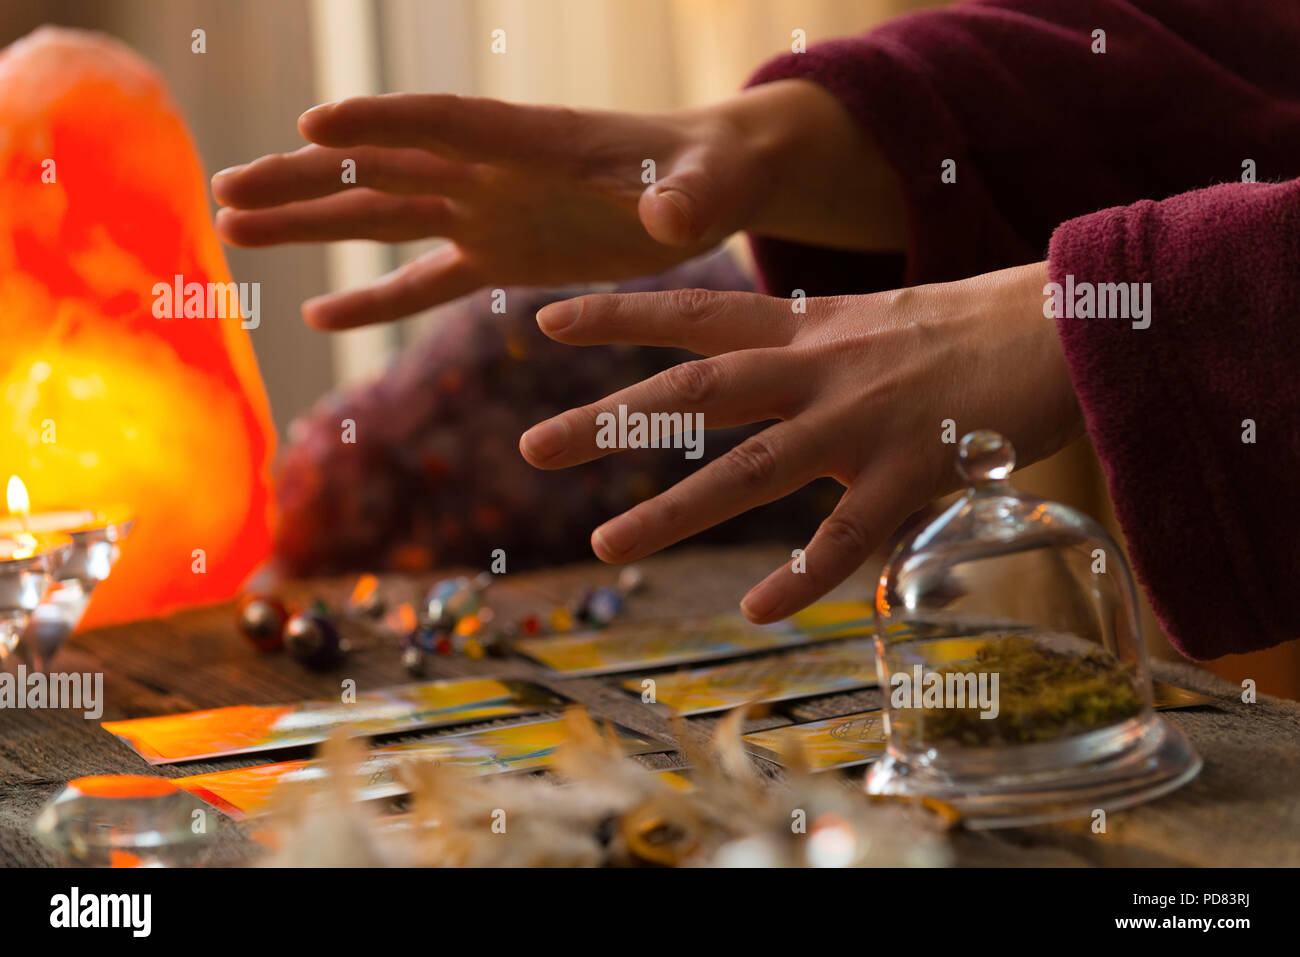 Fortune teller hands over tarot cards - Stock Image